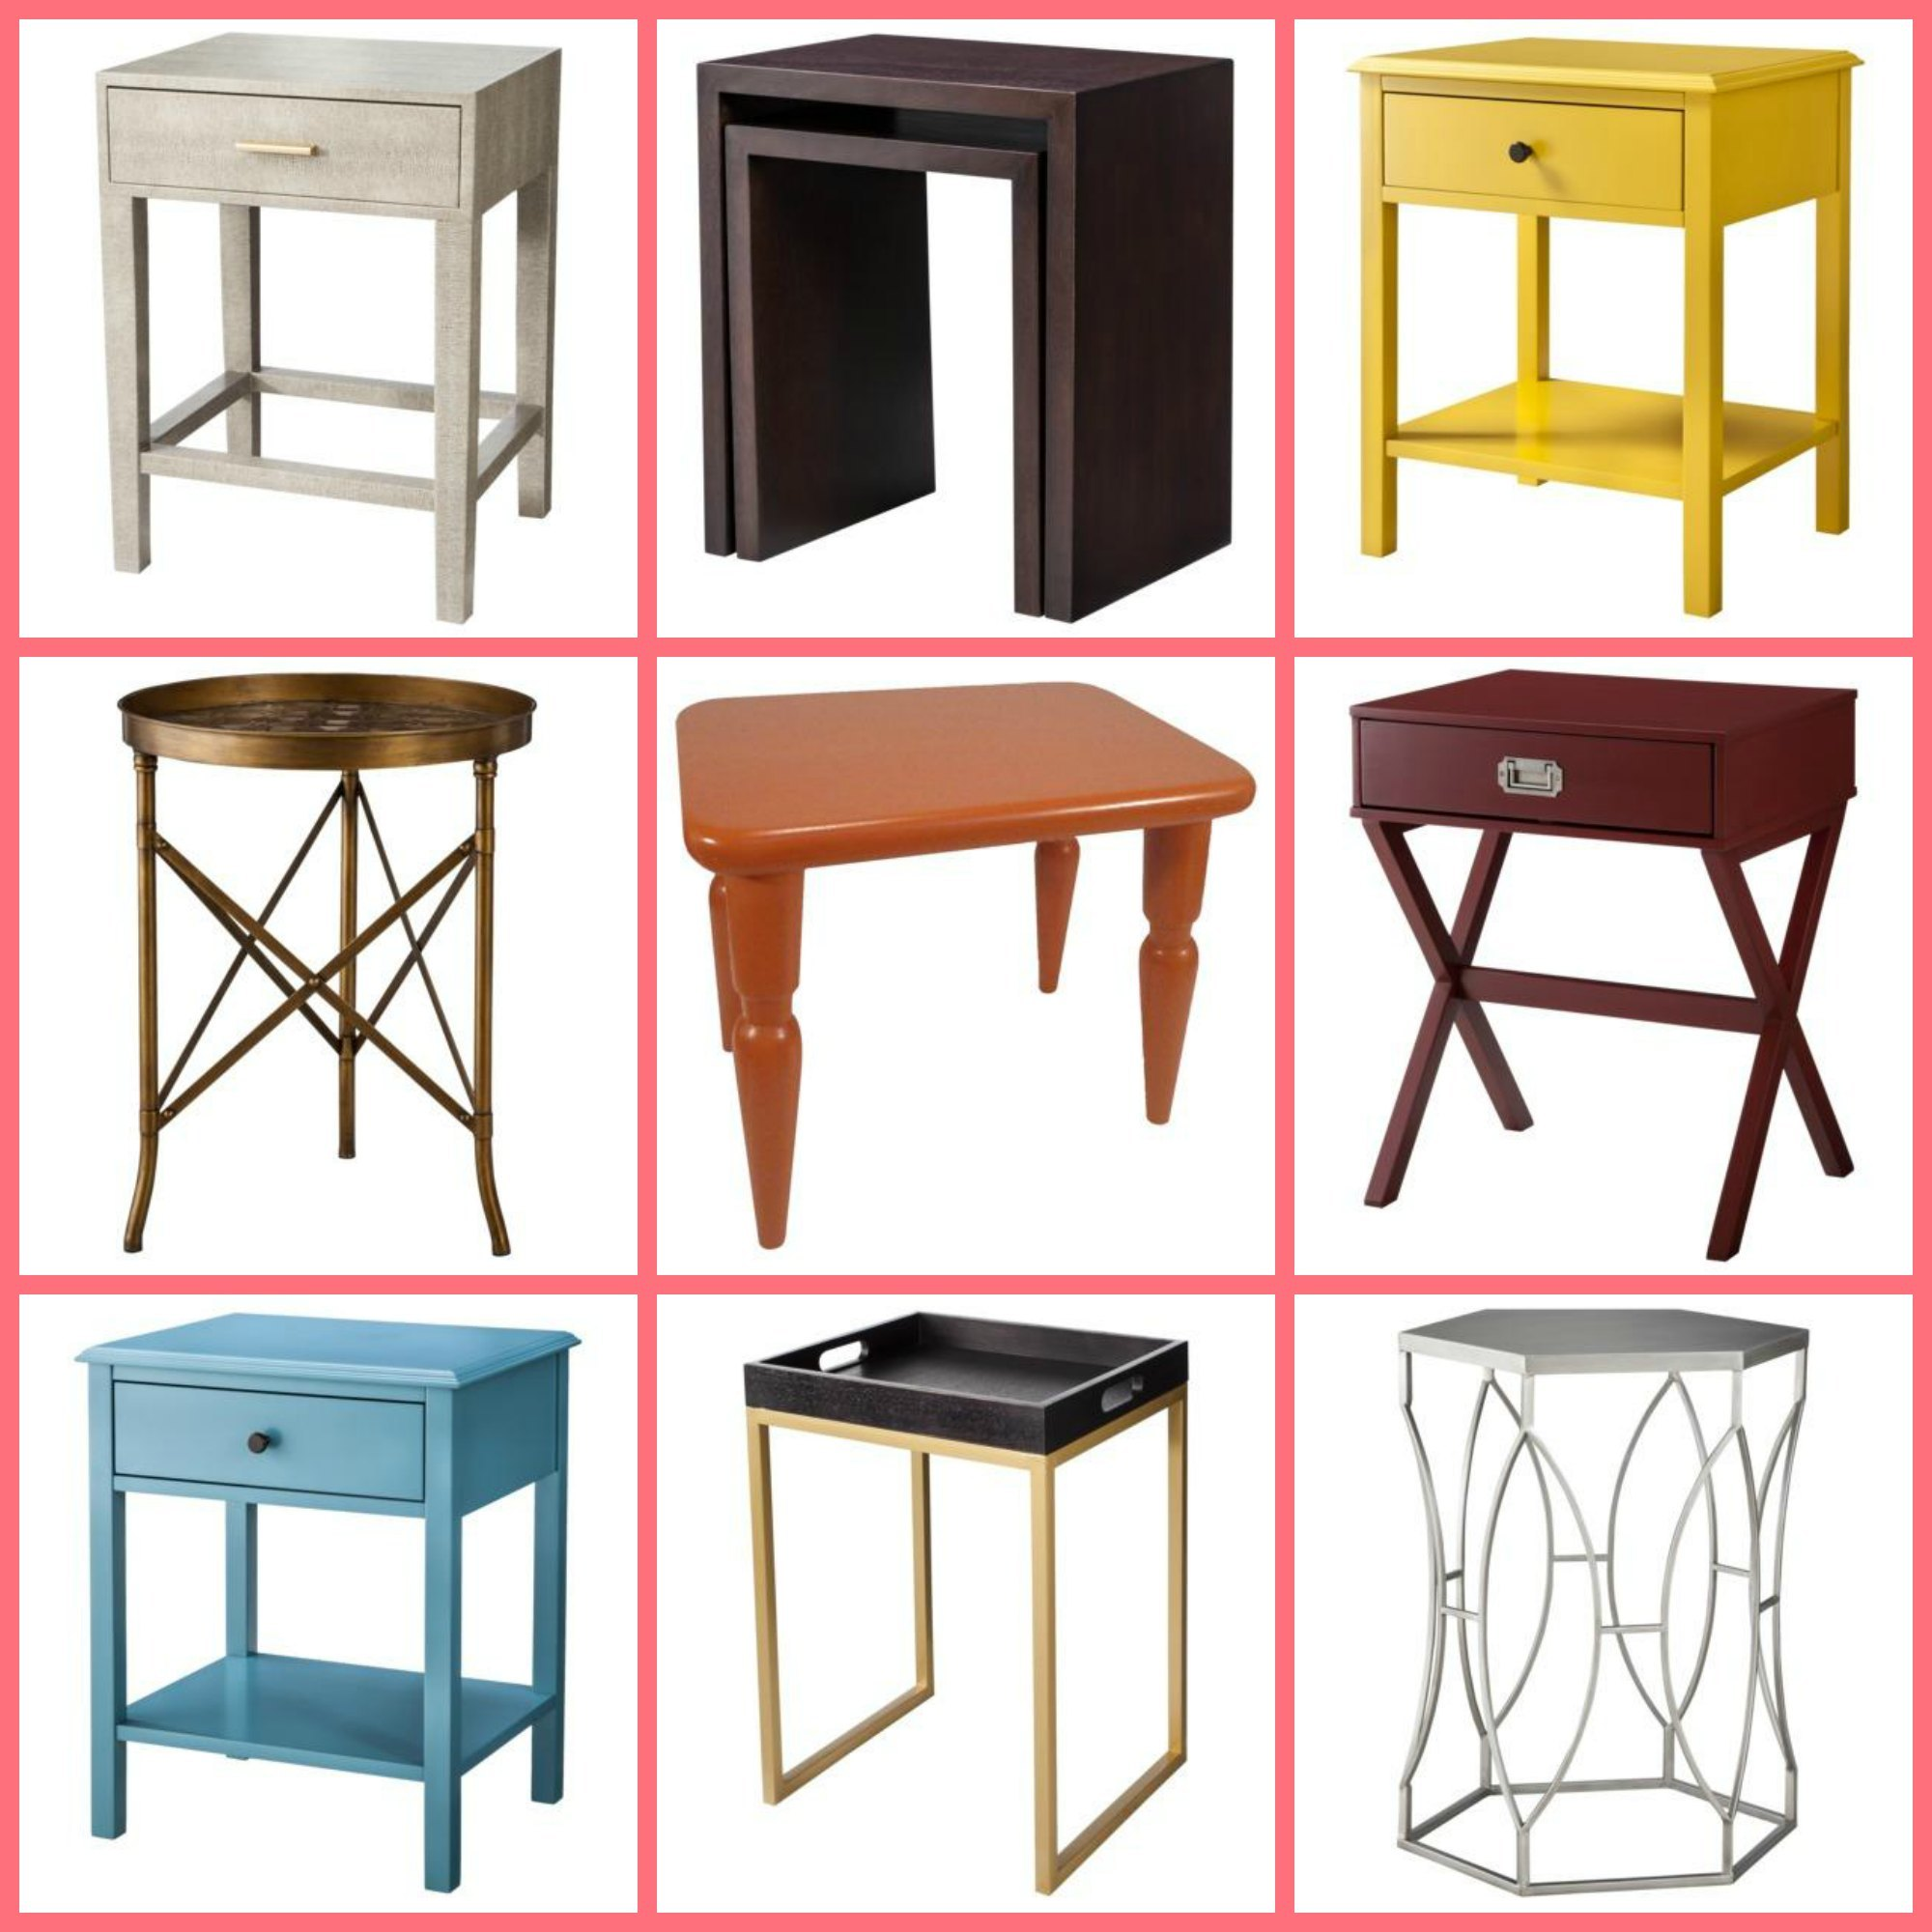 target threshold accent tables take your targertthr pink marble table clockwise from top left comfy chairs for bedroom windham collection small triangle corner metal bench legs